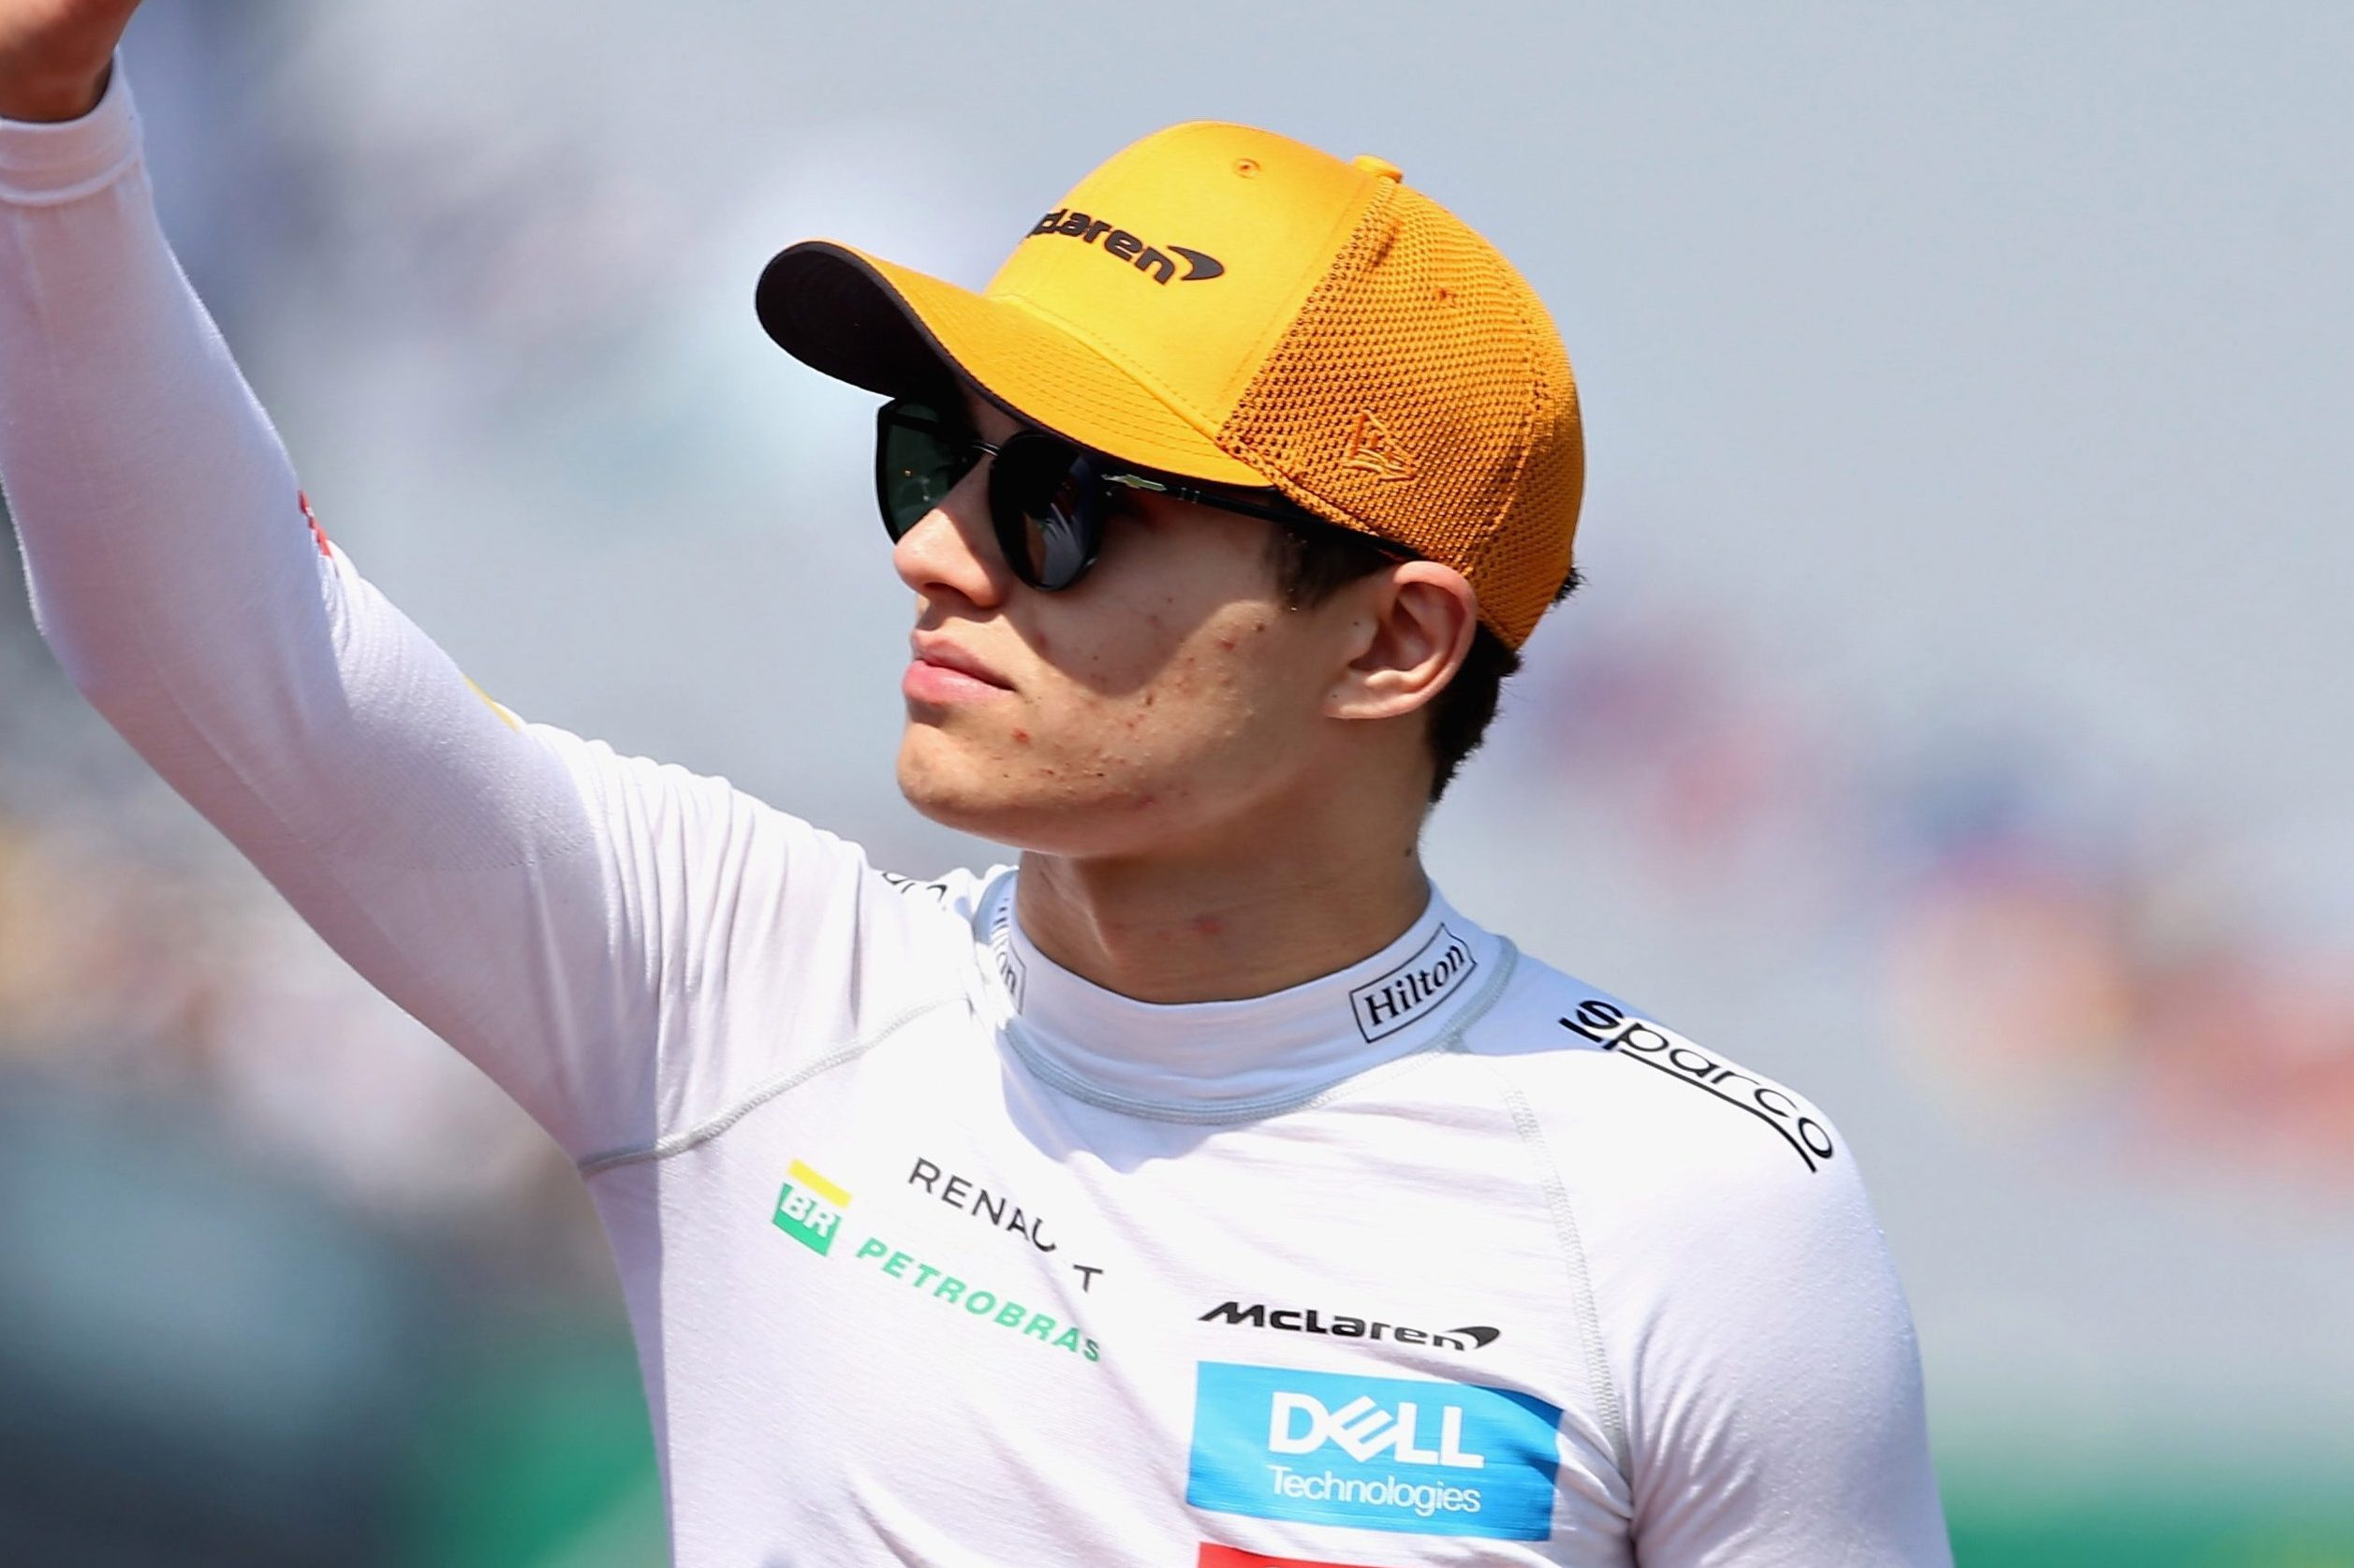 Lando Norris apologises to McLaren after failing to score any points on F1 debut